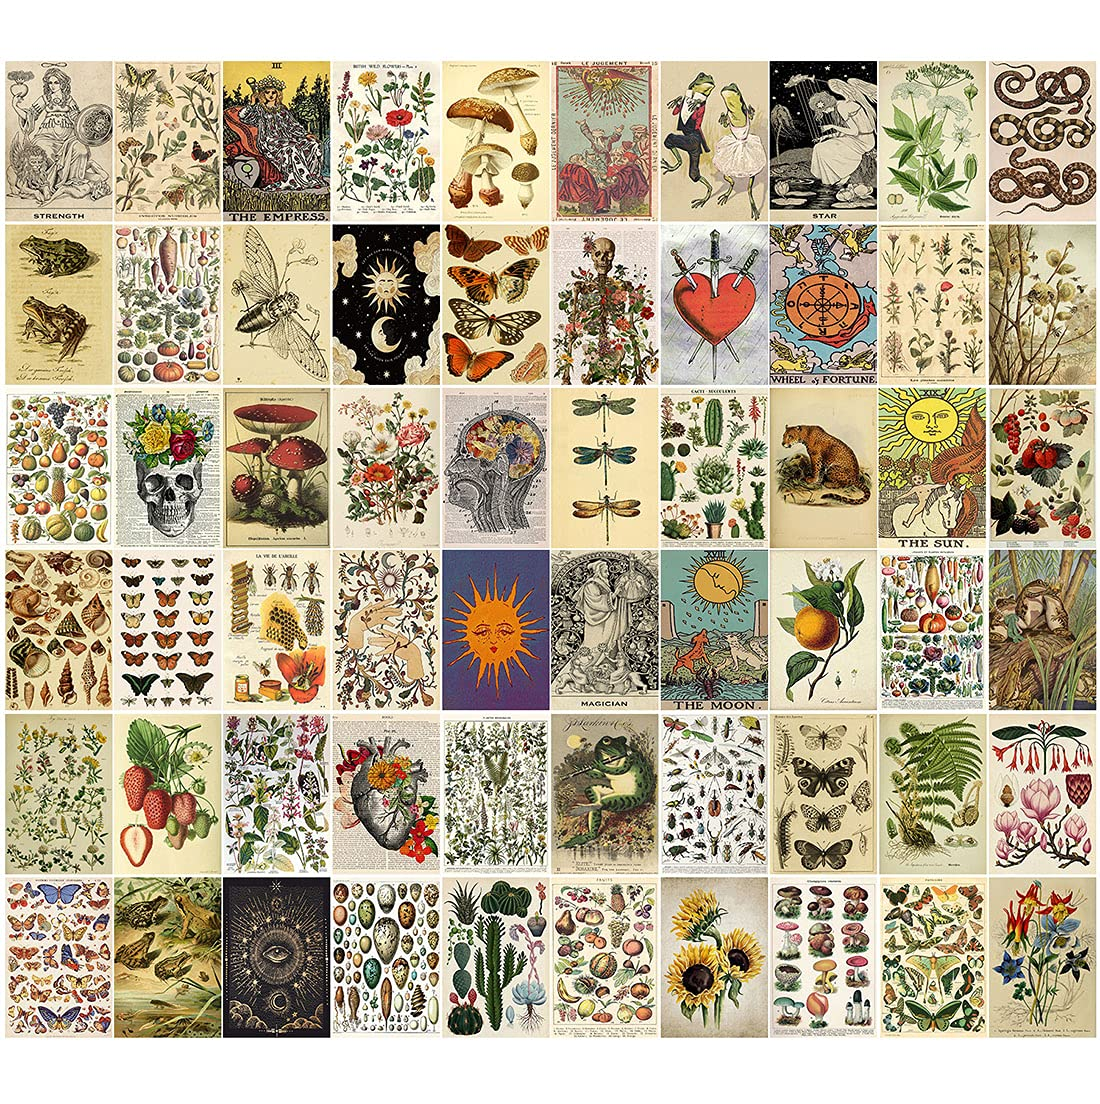 60PCS Vintage Posters for Room Aesthetic, Vintage Botanical Illustration Tarot Aesthetic Pictures Wall Collage Kit, Bedroom Decor for Teens Boys Girls, Room Decor Aesthetic, Cottagecore Decor